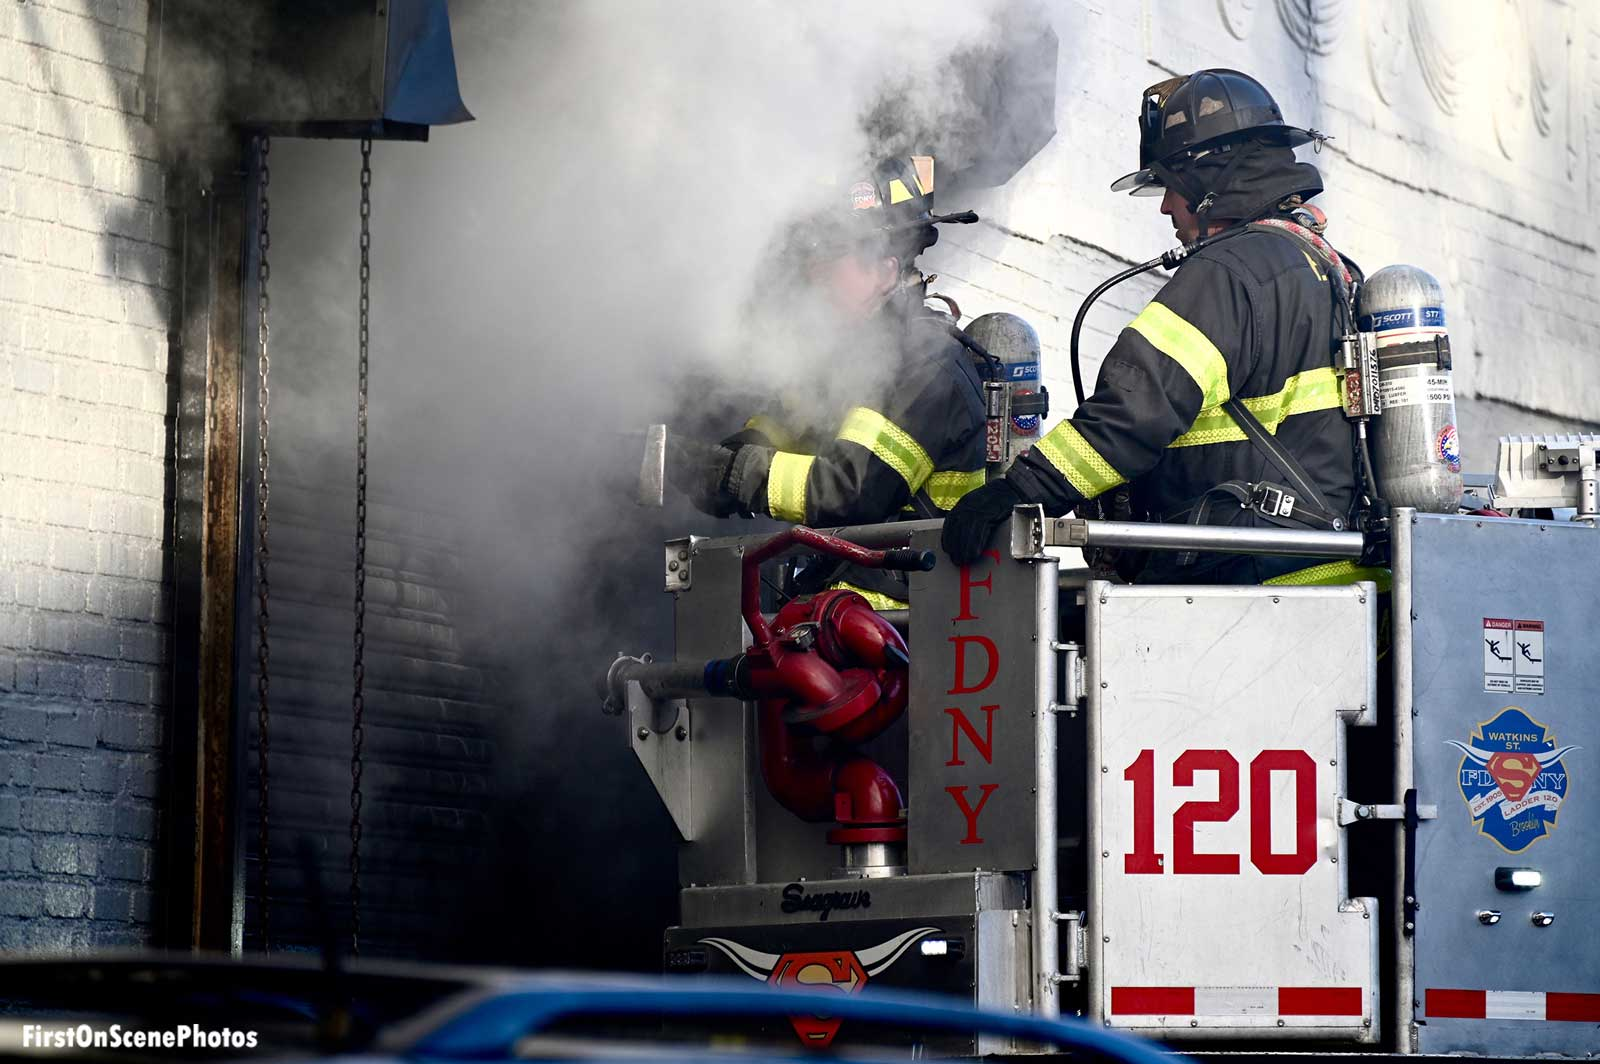 FDNY firefighters in a bucket with smoke